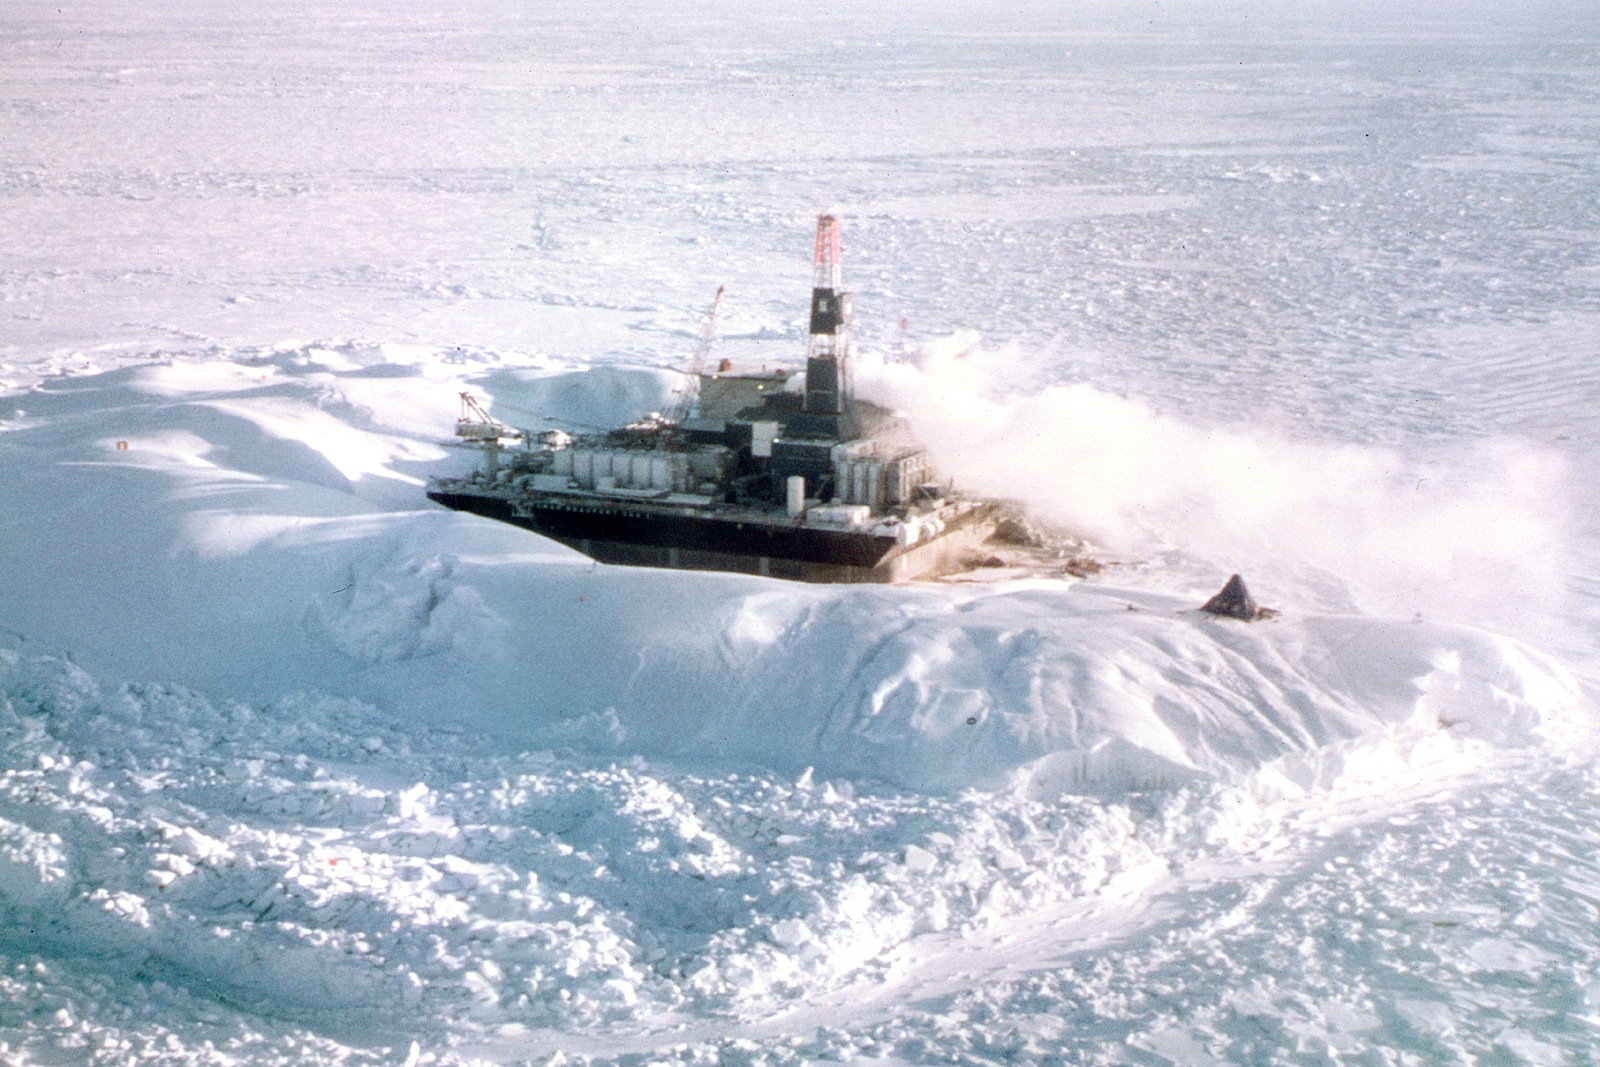 Arctic Beaufort Sea Drilling Operation